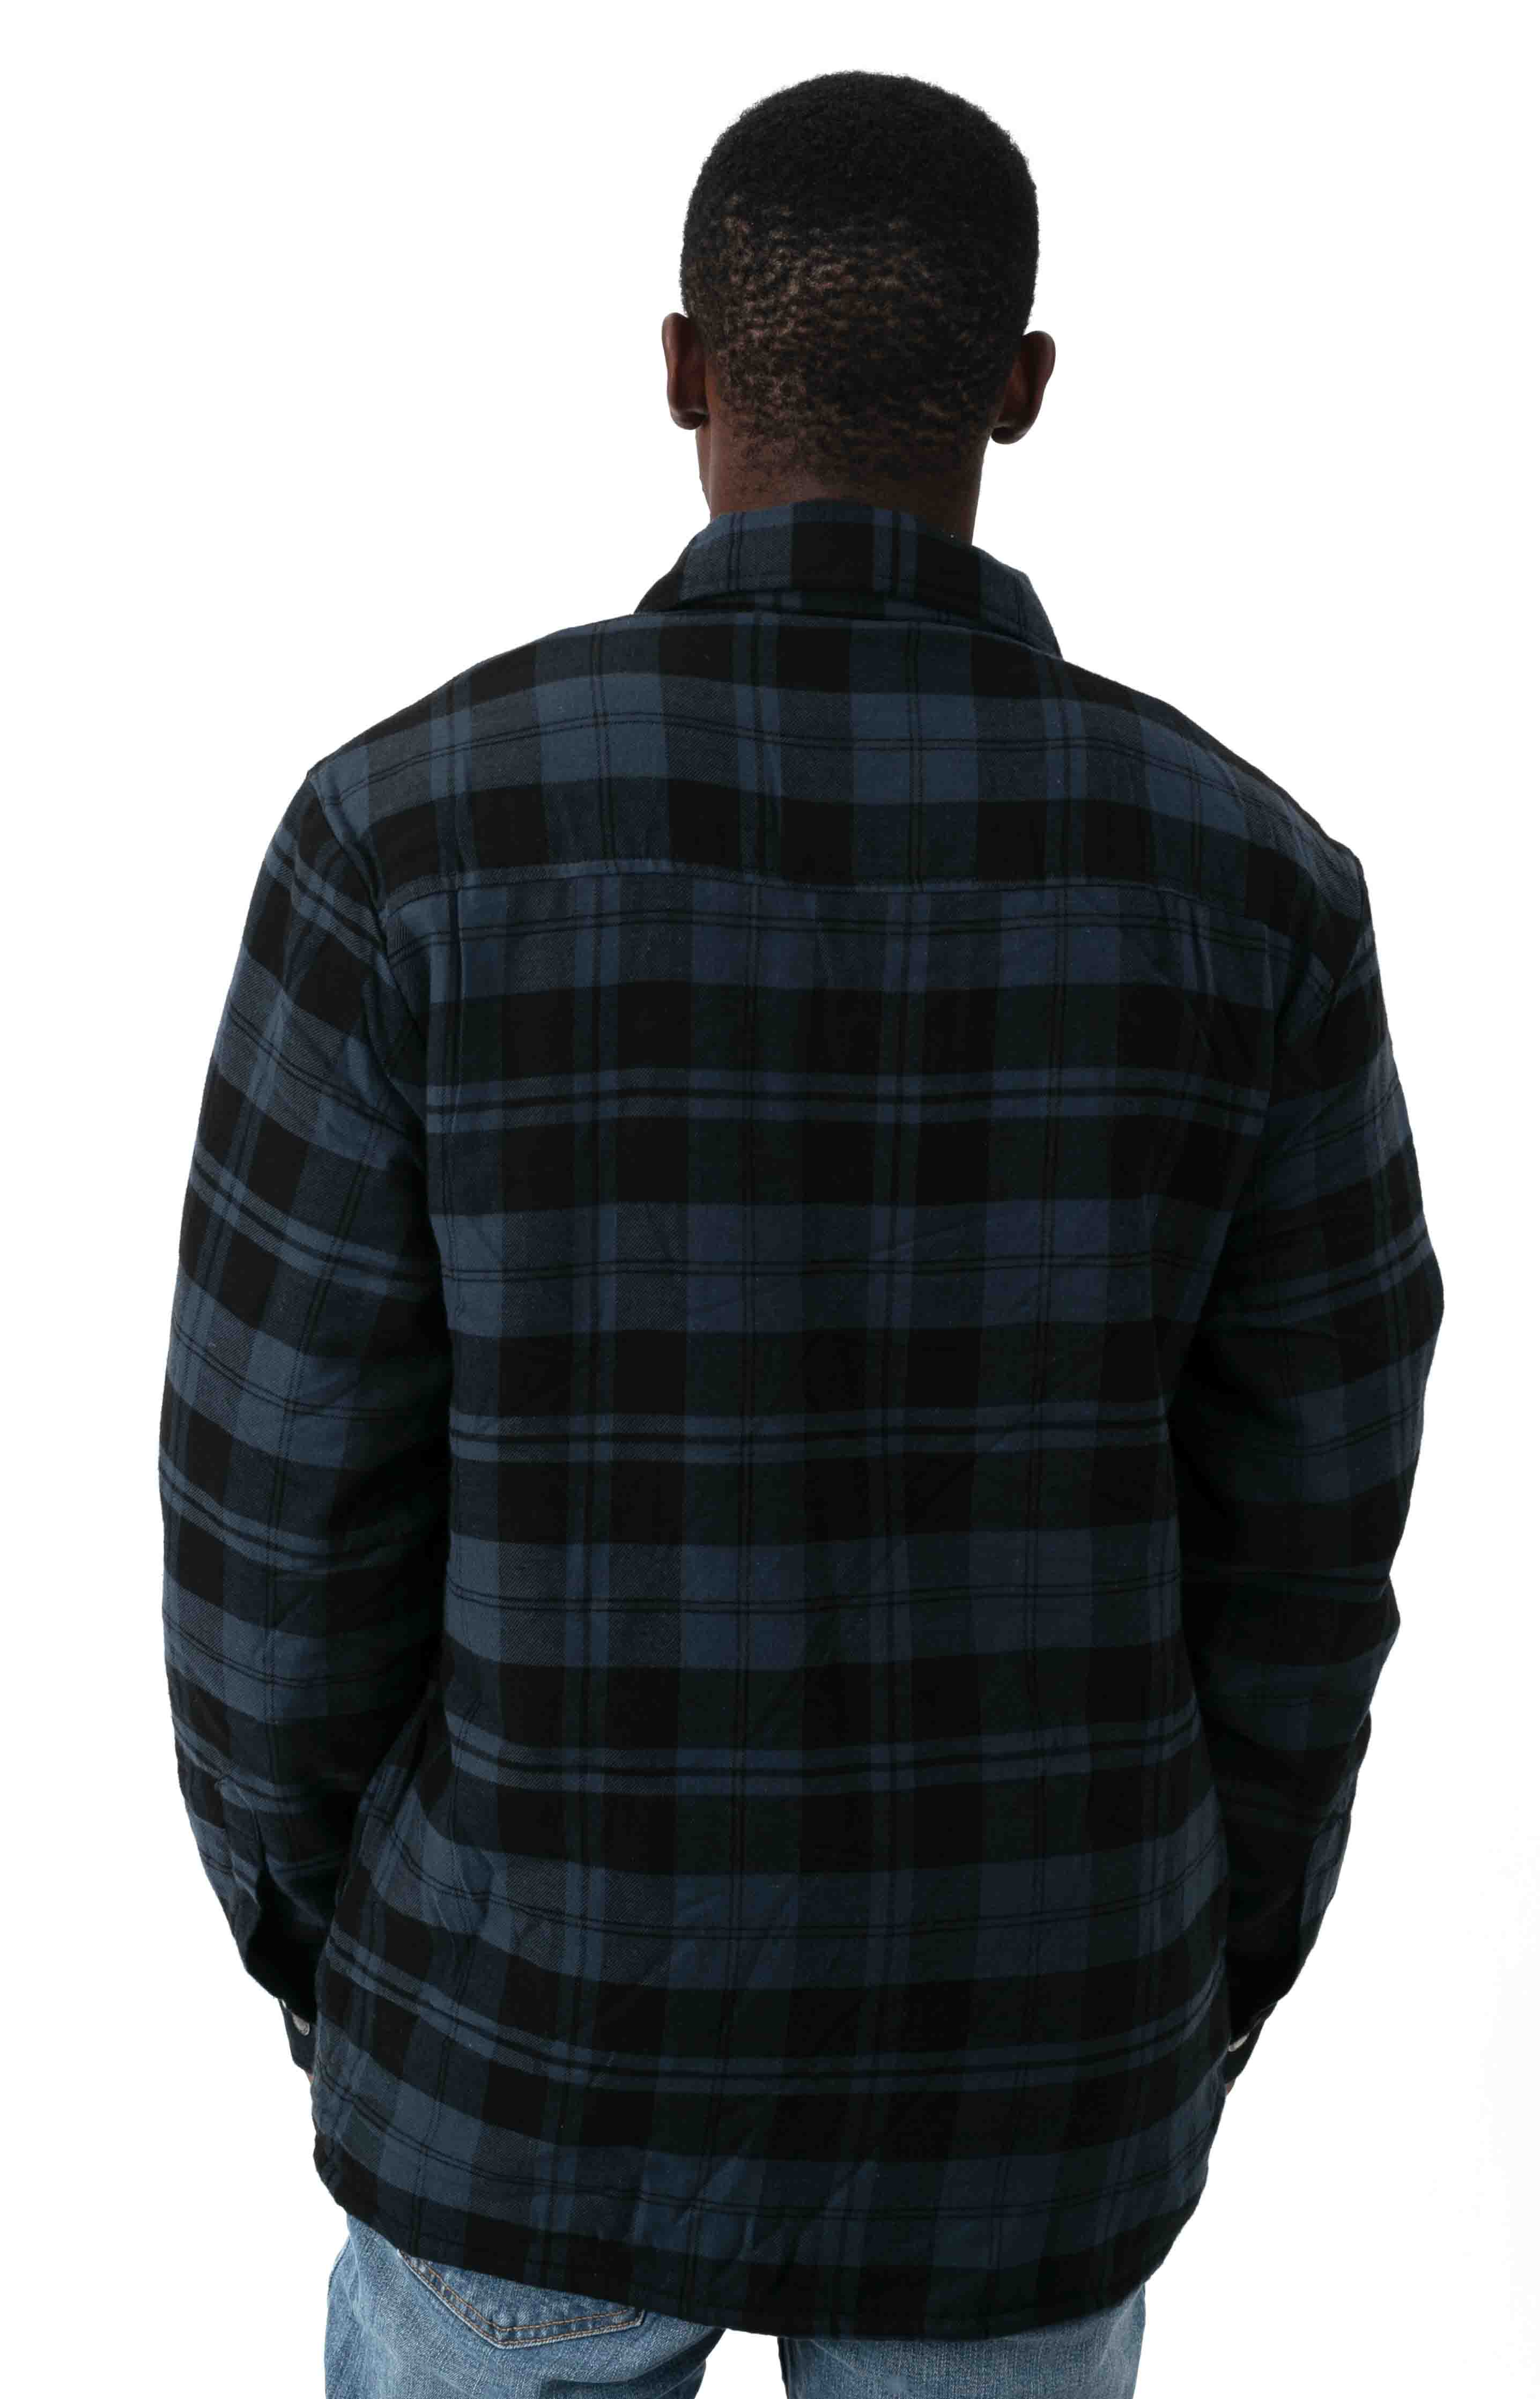 (TJ210OP1) Sherpa Lined Flannel Shirt Jacket with Hydroshield - Ink Navy Plaid  3